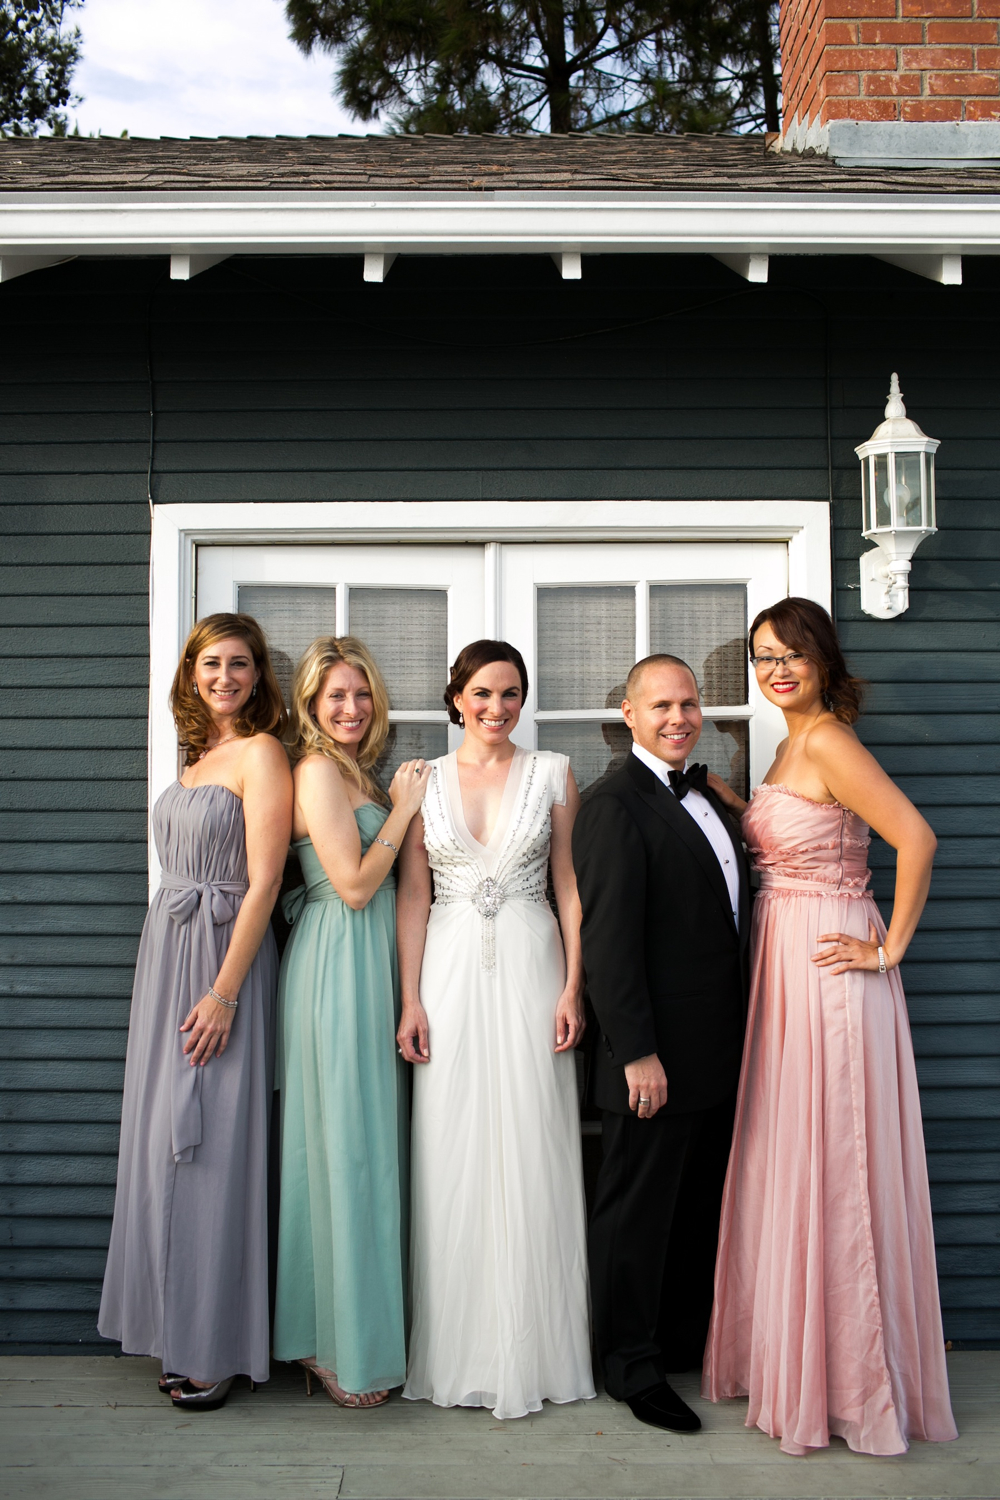 Preowned Wedding Dresses Nyc : Jenny packham muse photo gallery real wedding